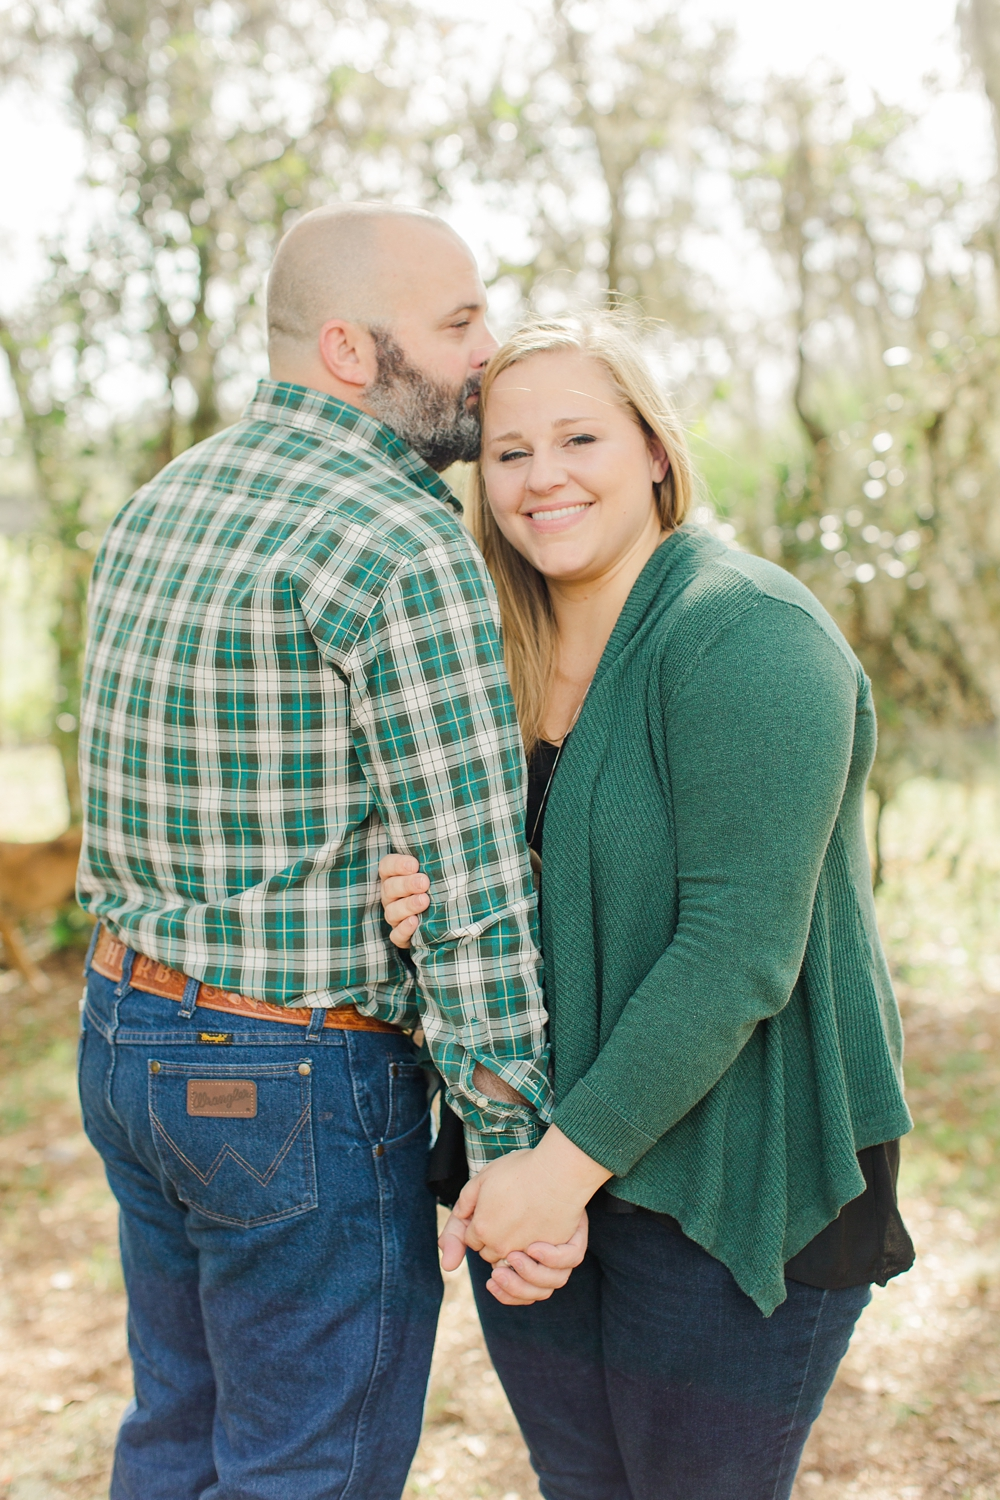 Ashley Holstein Photography | Wauchula Florida Family Session | Film Photographer Mom Dad Together Lifestyle